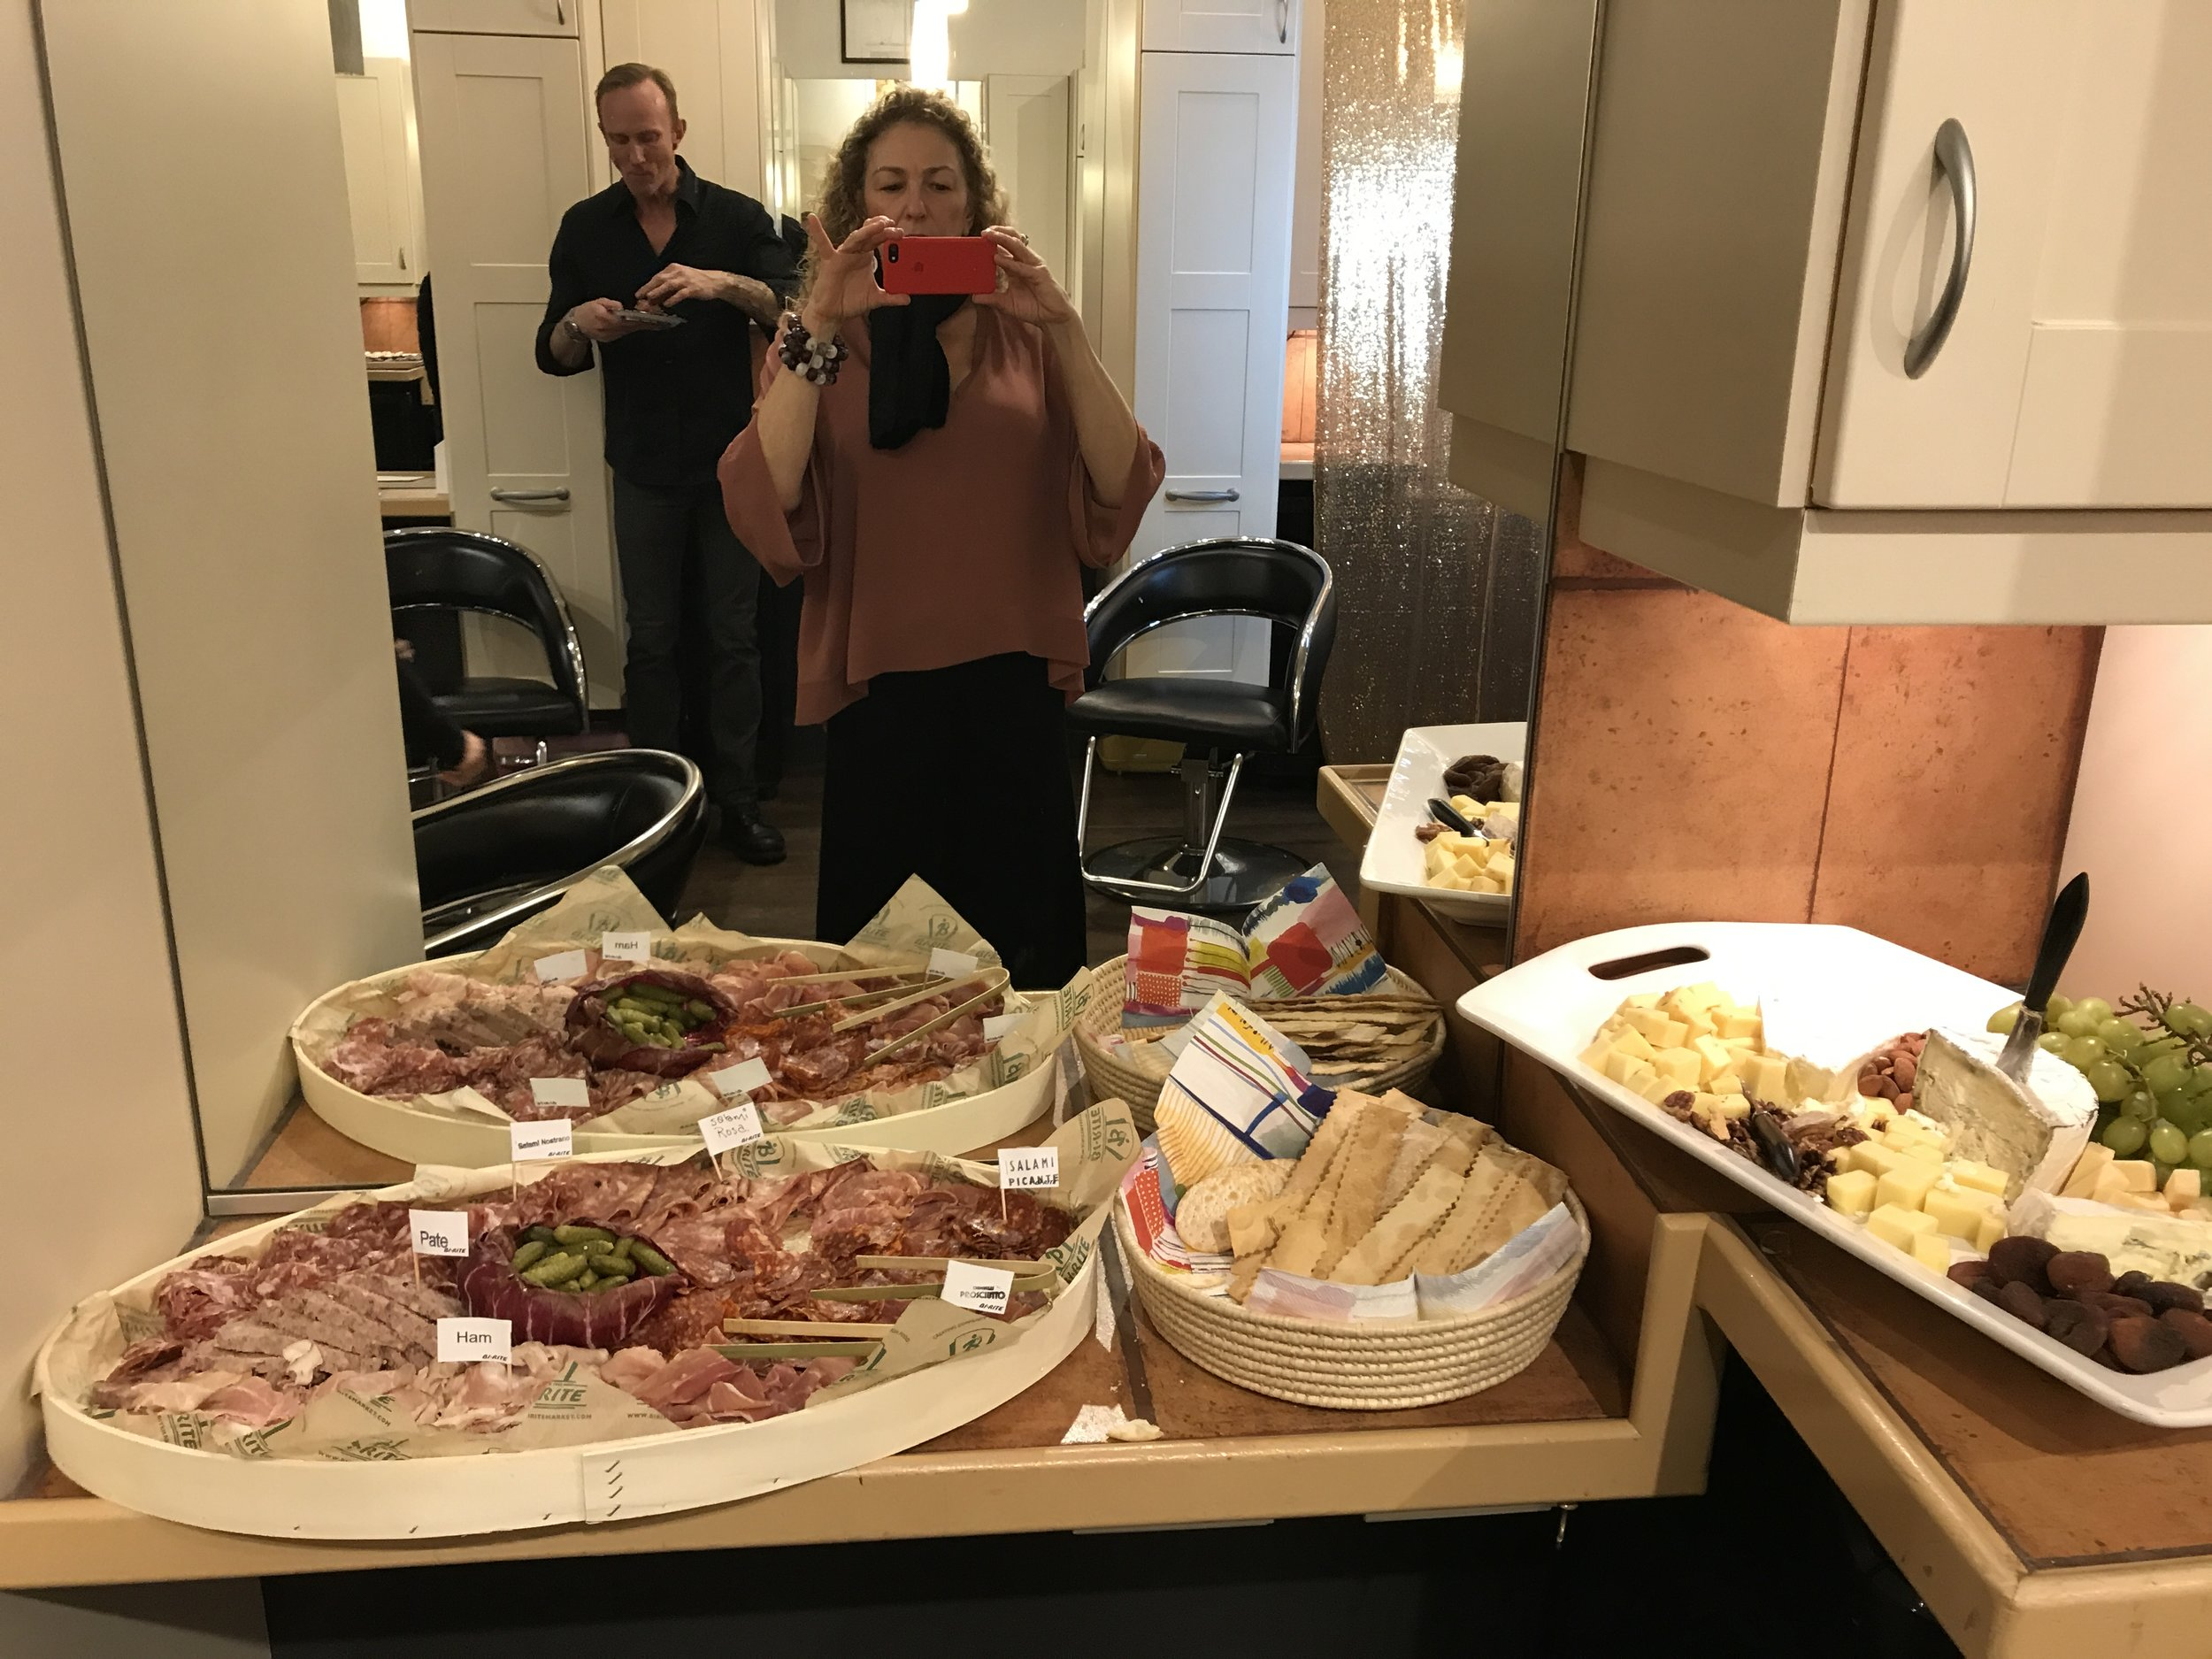 Some of the delicious food at the salon reception.